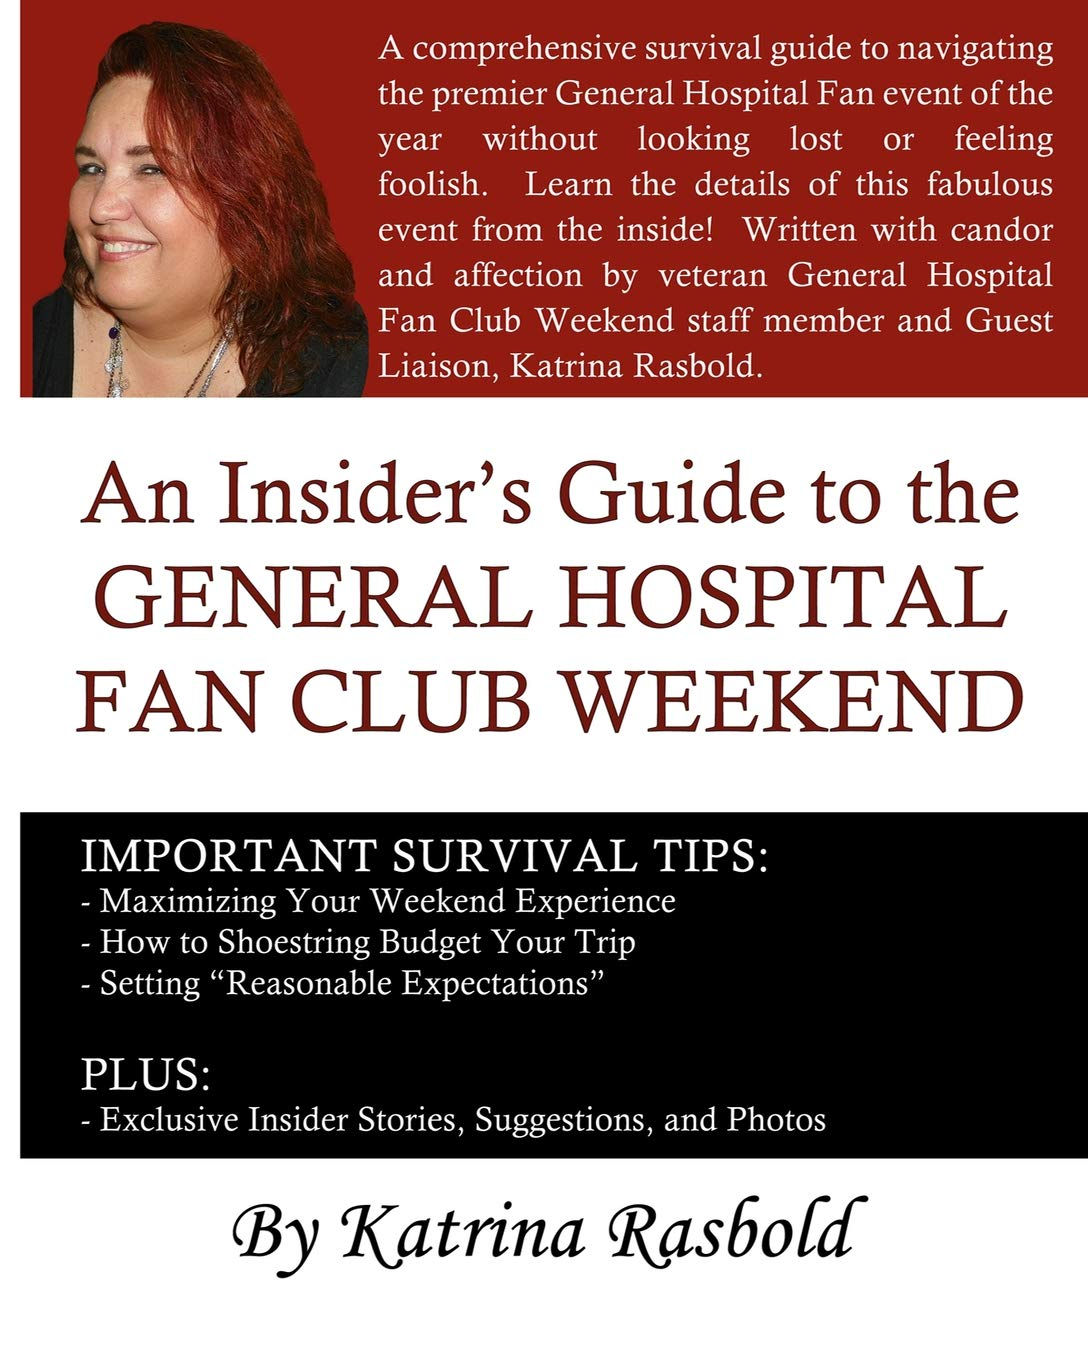 An Insider's Guide To The General Hospital Fan Club Weekend - Full Color Edition pdf